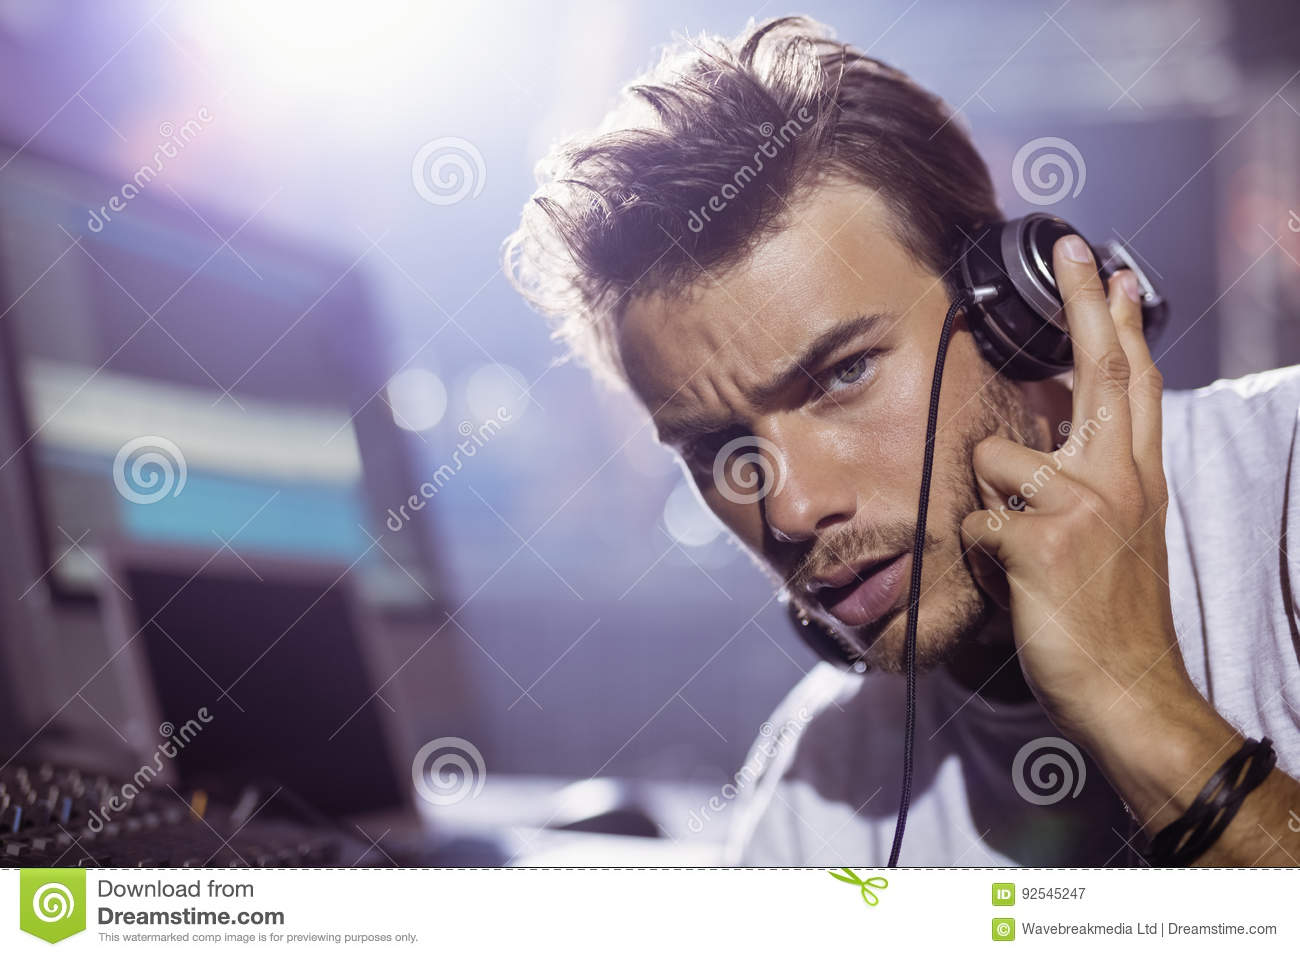 Portrait of young male dj with headphones at nightclub